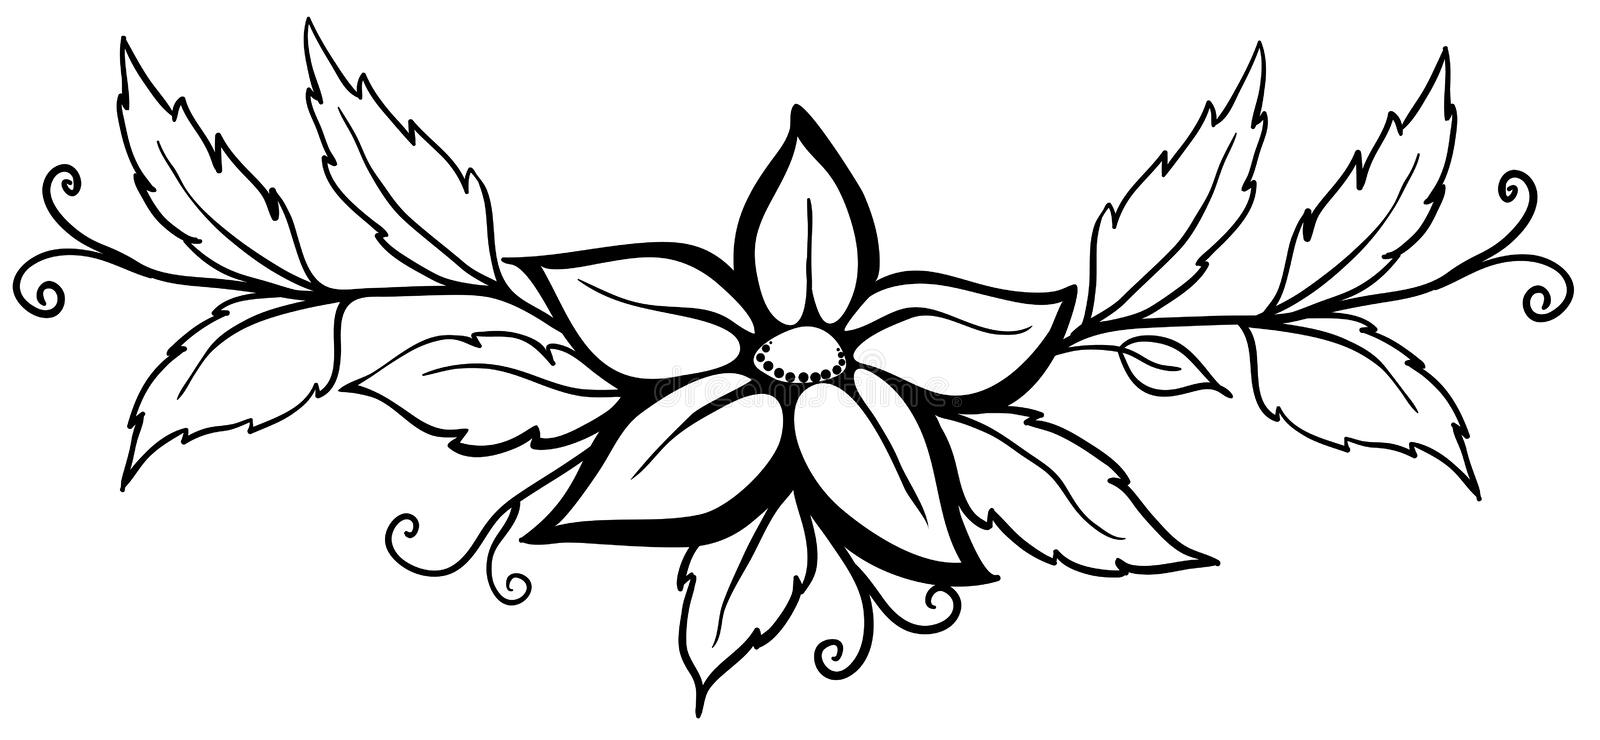 Black and white abstract flower. With leaves and flourishes. Isolated on white. Beautiful black and white abstract flower. With leaves and flourishes. Isolated vector illustration